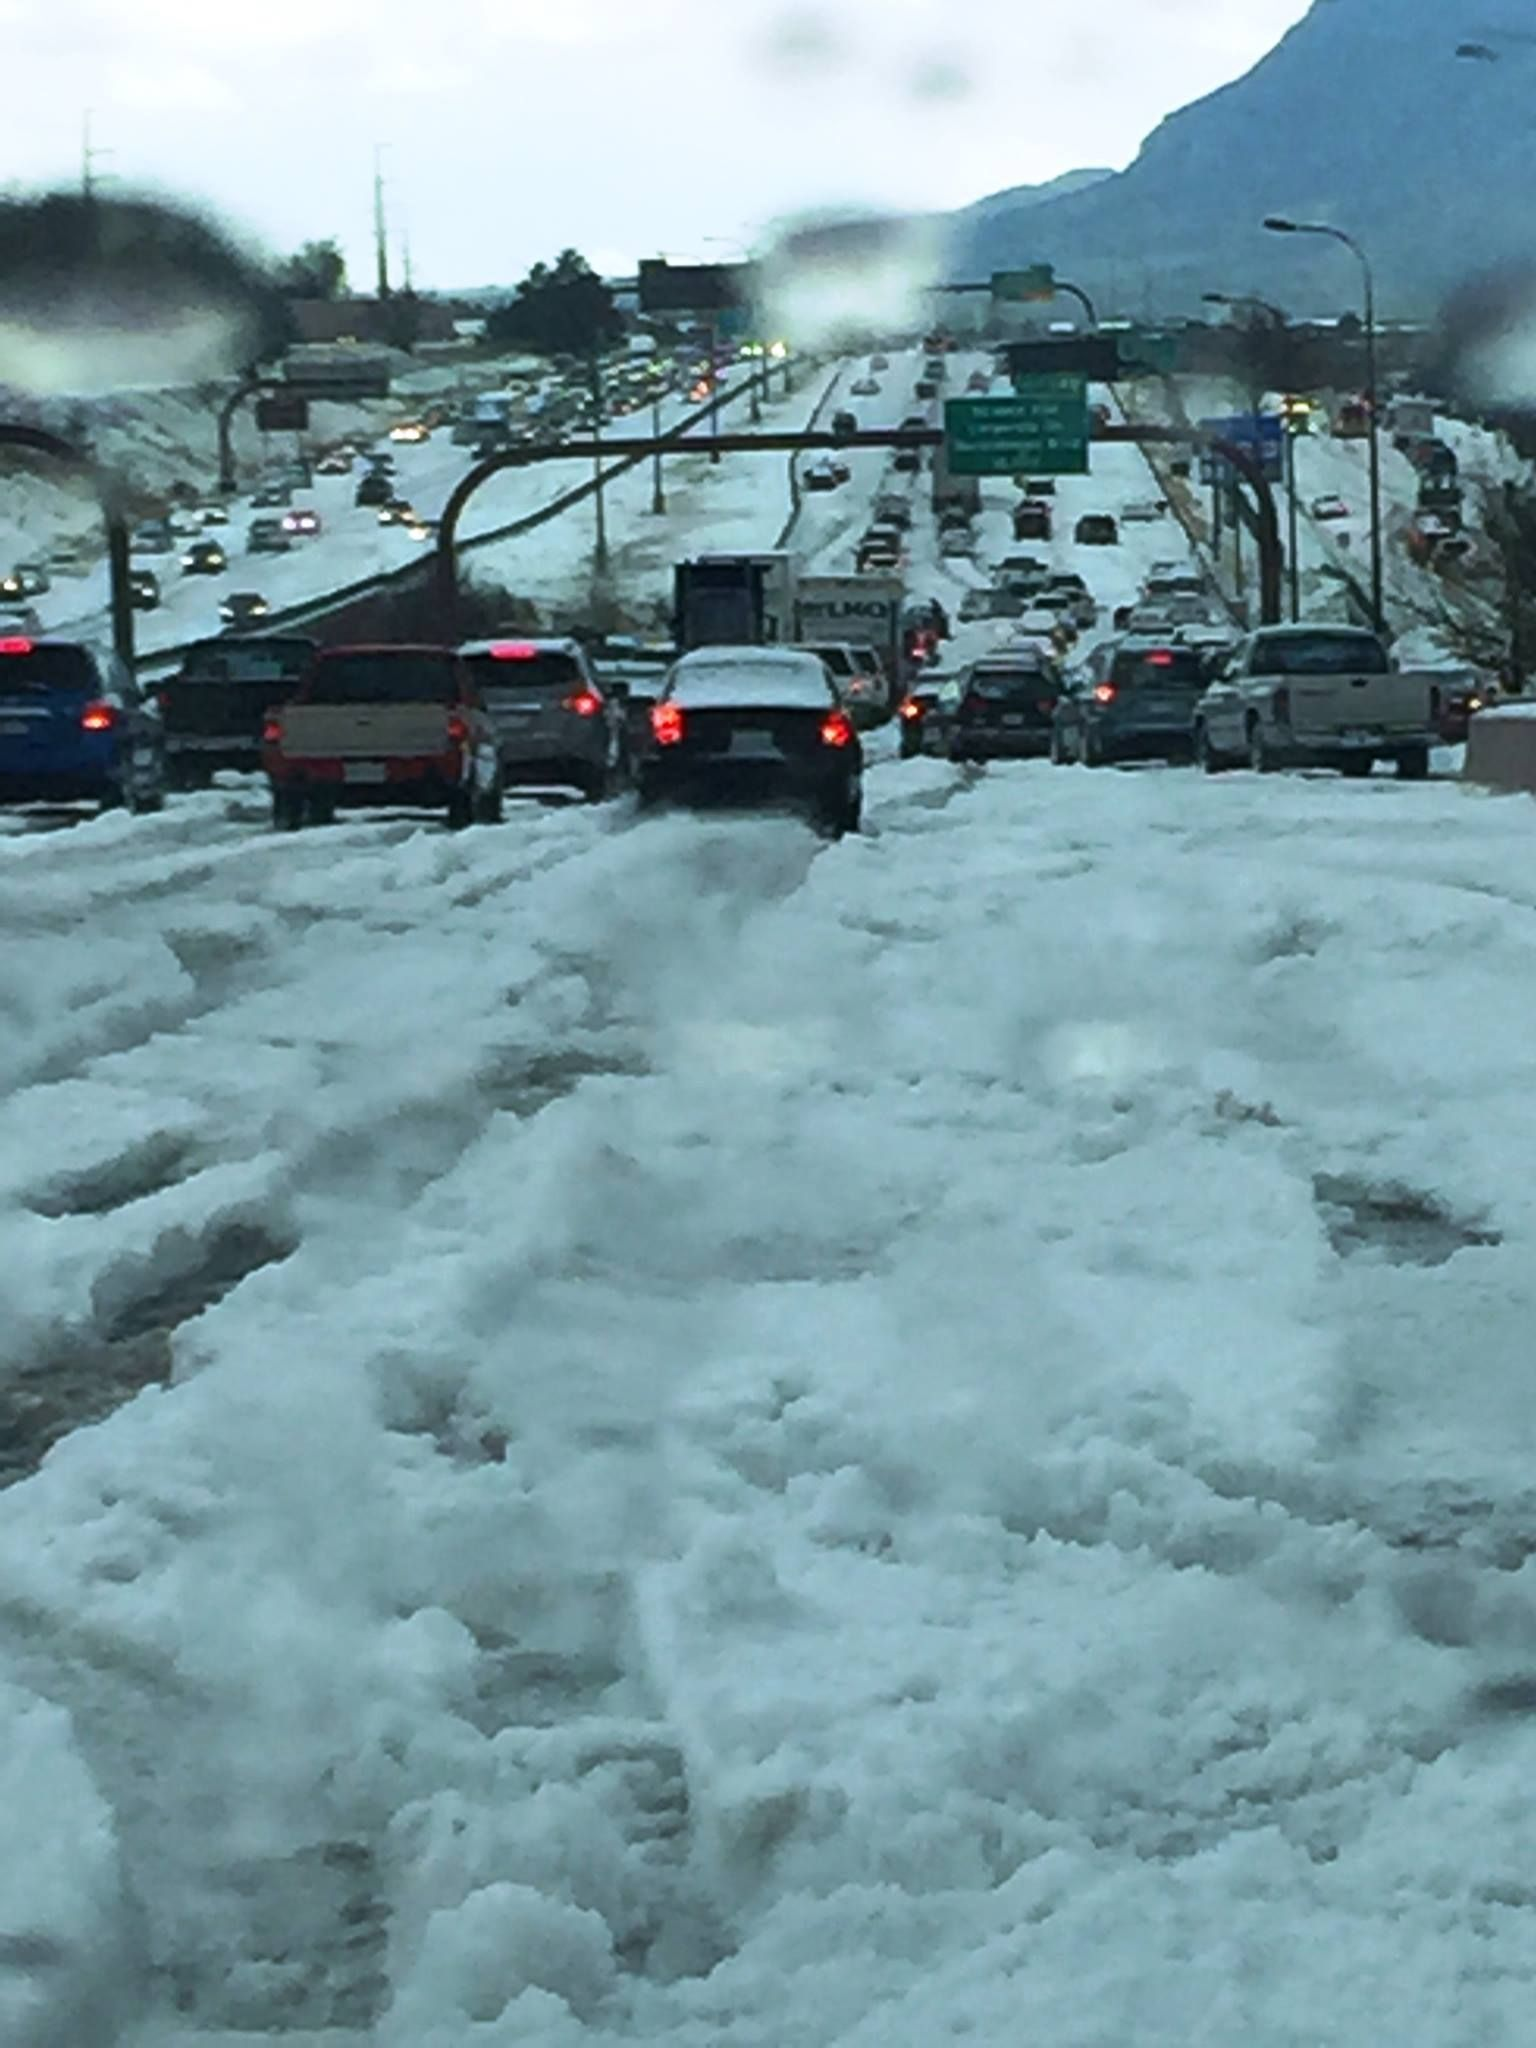 Colorado Springs Hit By Massive Hail Storm Elite Roofing Colorado Springs Colorado Hail Storm